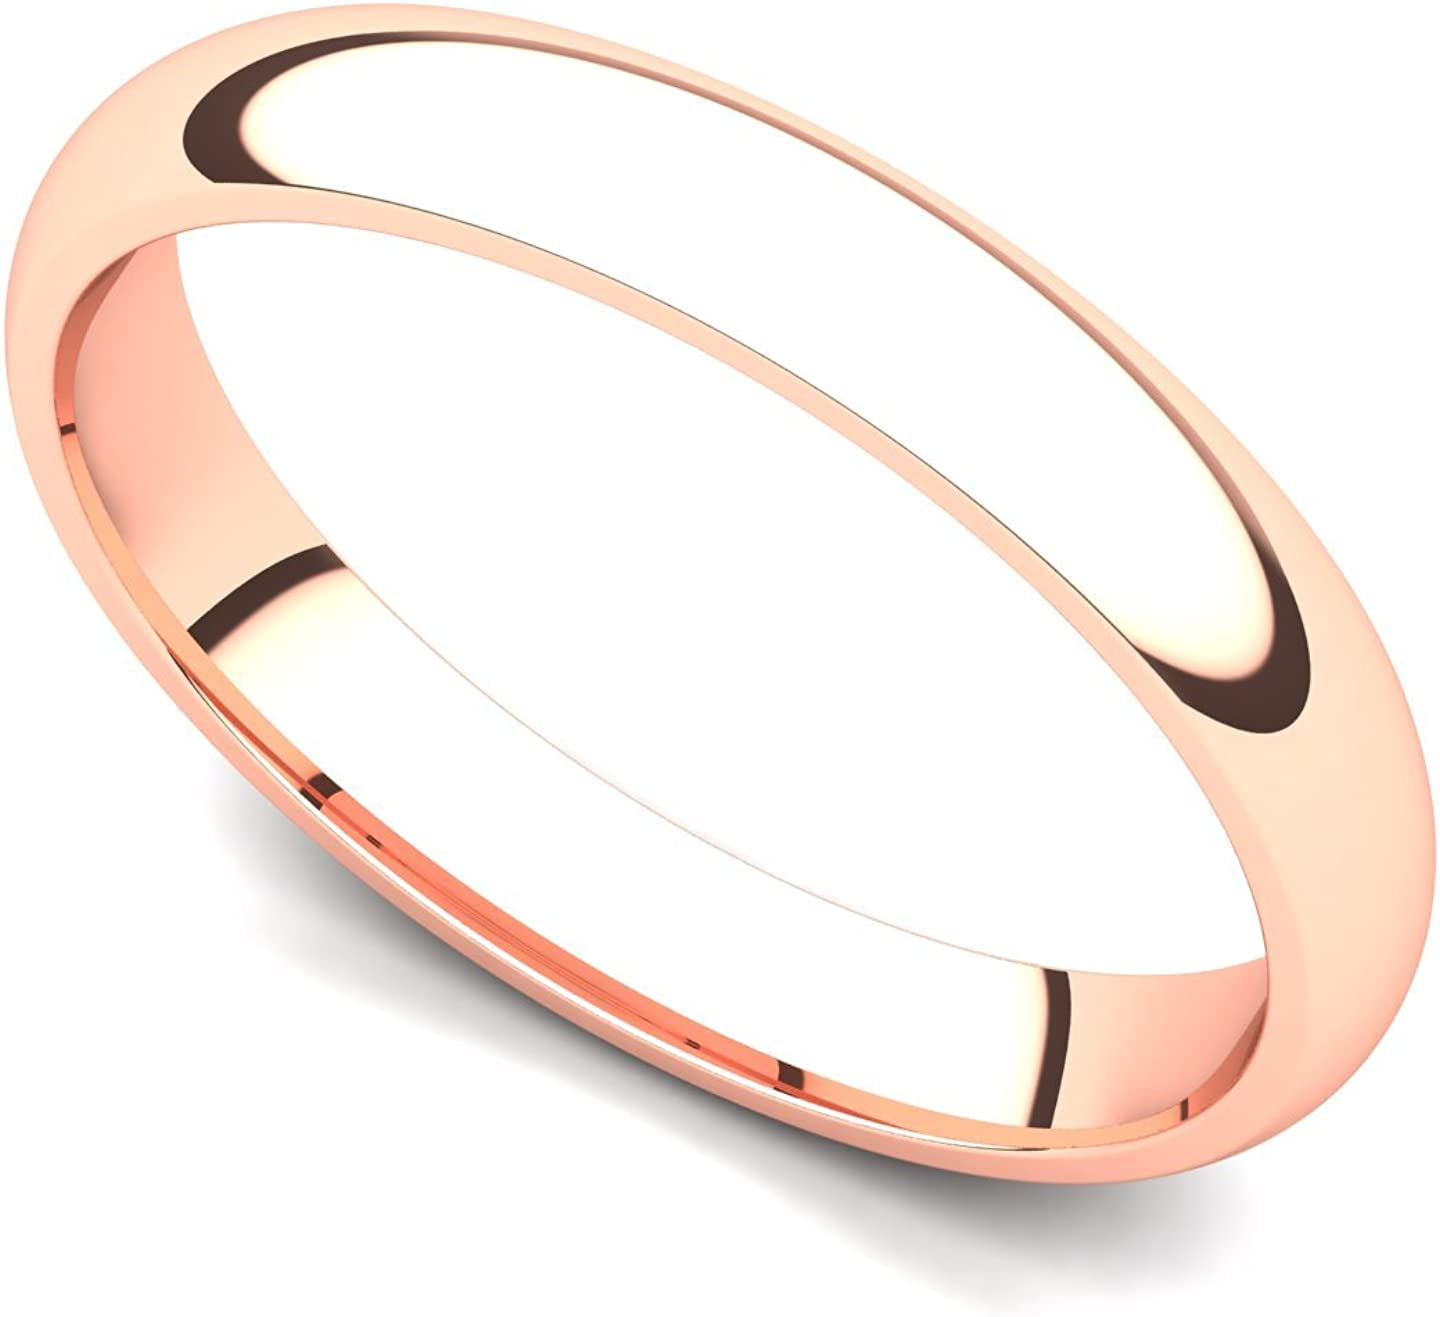 14k Rose Gold 3mm Rare Classic Plain Popular shop is the lowest price challenge Comfort Ring Fit Band Wedding